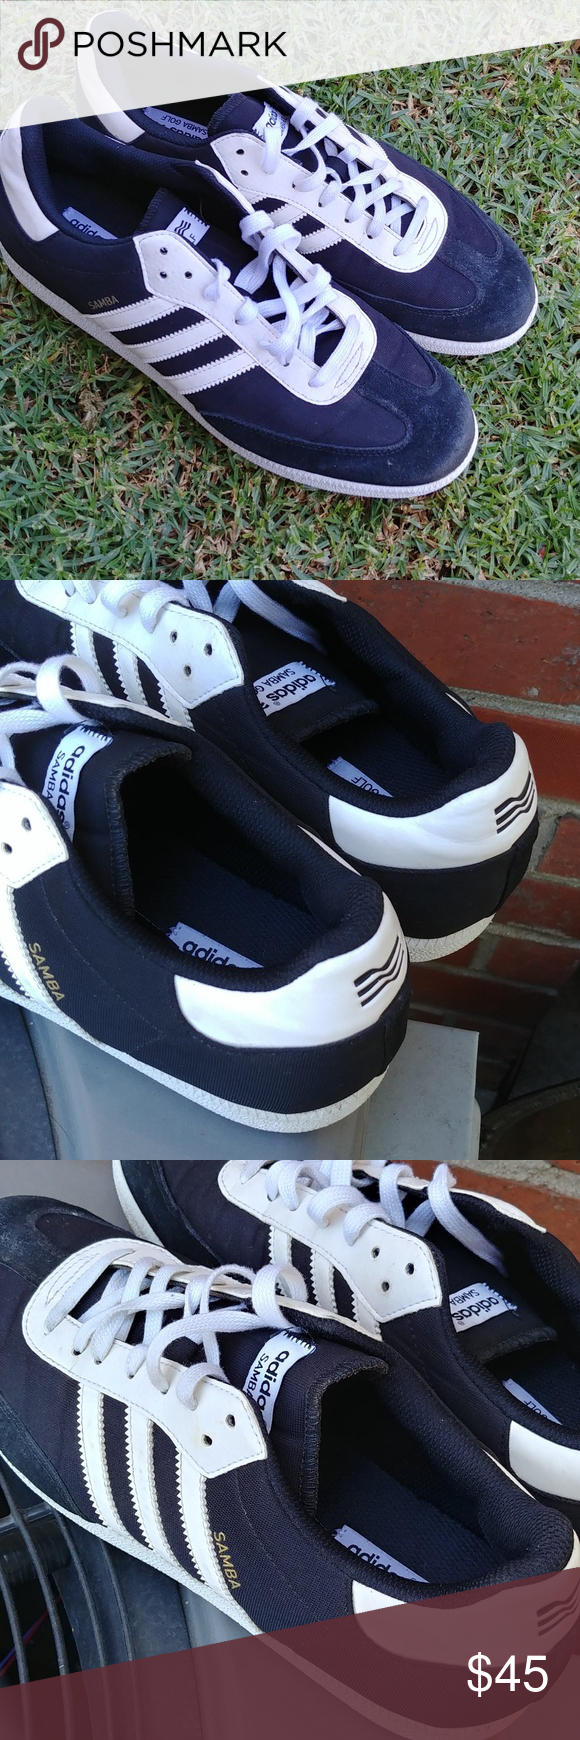 size 10 golf shoes adidas